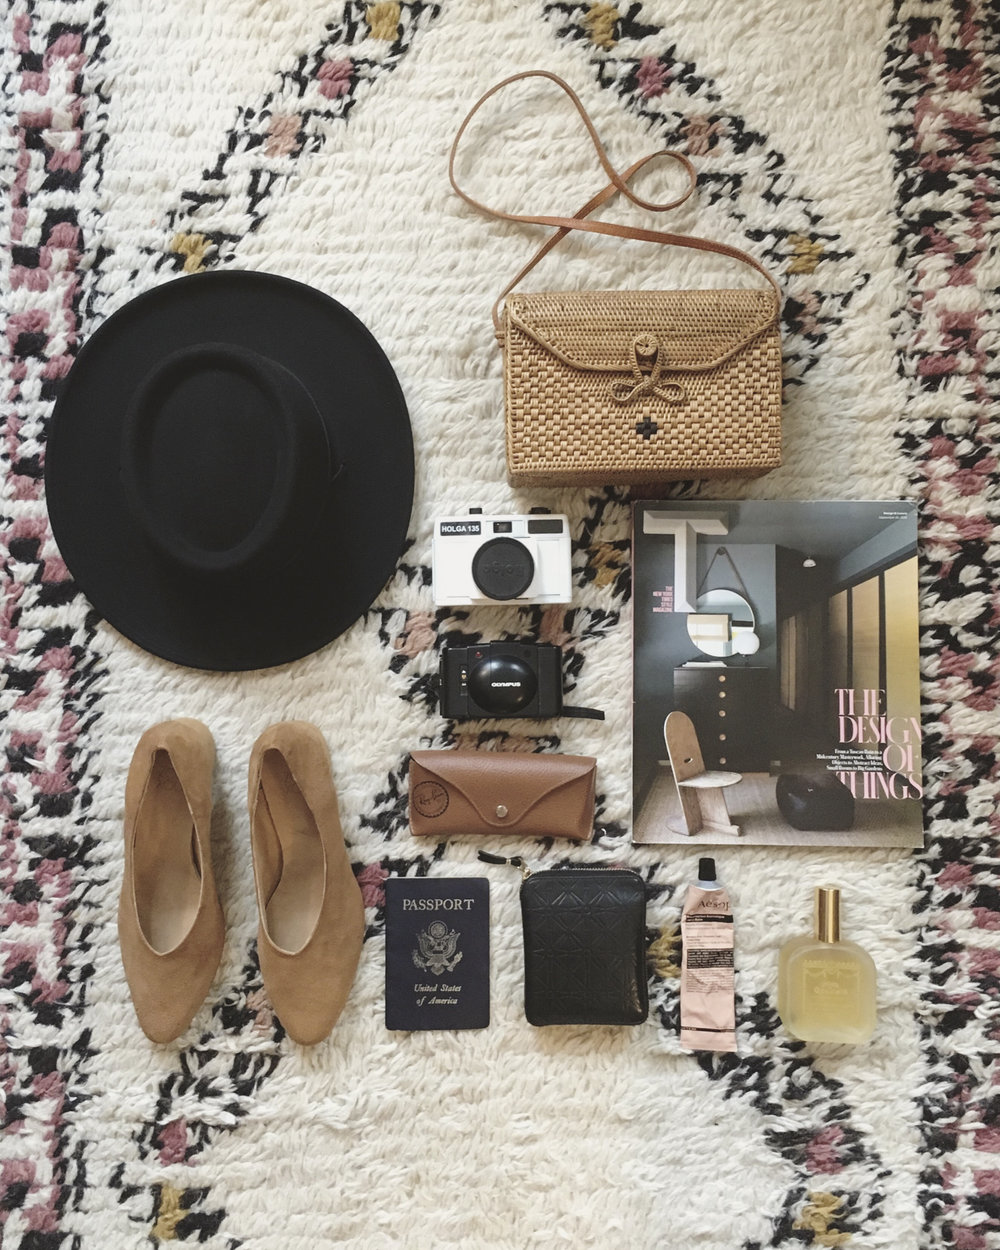 Destination: Naples, Florida - Packing Essentials: 1) Tio y Tia Gambler hat for feeling like Georgia O'Keeffe, 2) Bembien Sofia bag because it's the perfect size for all my essentials and it's woven, which makes it perfect for warm-weather adventures, 3-4) two different film cameras because in my dreams I'm a legit photographer, 5) T Magazine because it's the best way to kill time on a flight, 6) Ray-Ban sunglasses because sun, 7) Aesop hand lotion: all-in-one aromatherapy and moisturizer, 8) Santa Maria Novella perfume because it's exactly how I want to smell always, 9-10) wallet and passport (self-explanatory), and 10) last but not least Zou Xou Belu pumps (In dulce de leche suede)  because they go with absolutely everything I own.